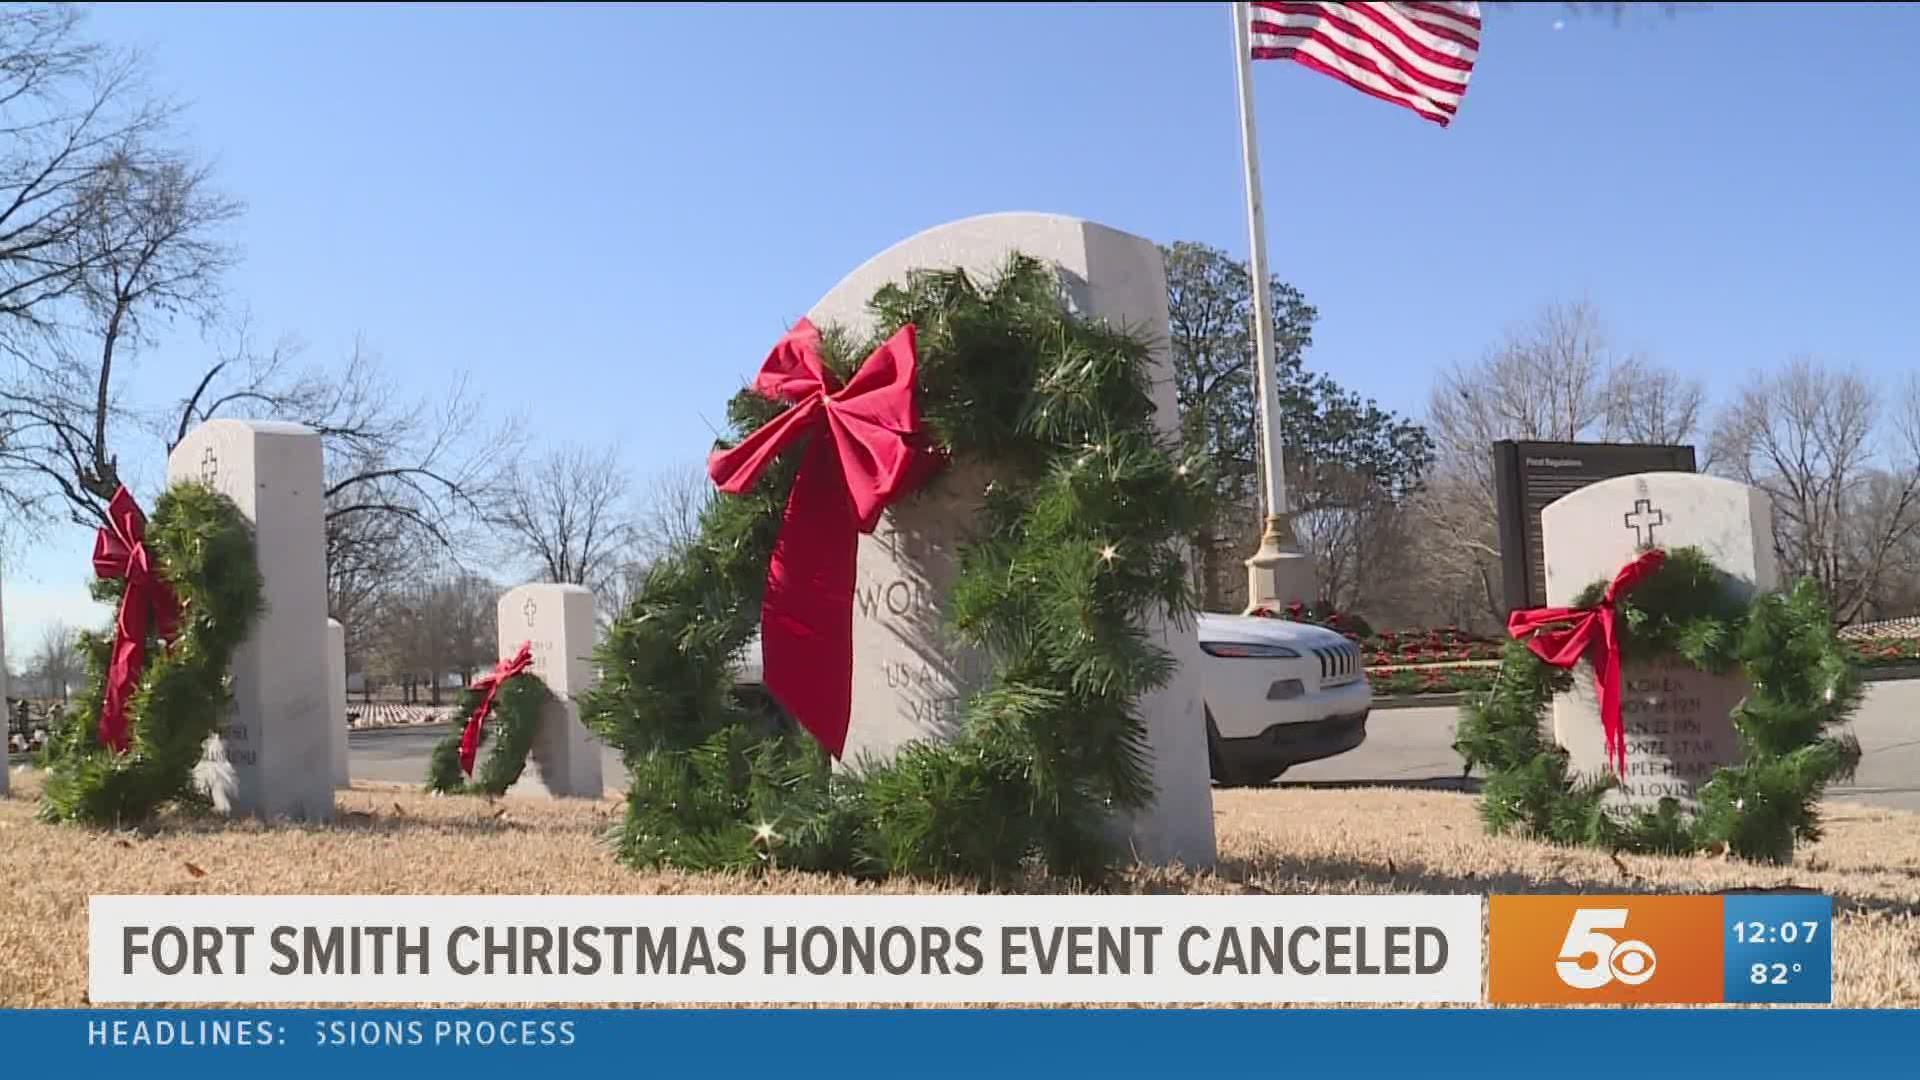 Fayetteville Ark Christmas Activities 2020 Fort Smith Christmas Honors program cancels 2020 events